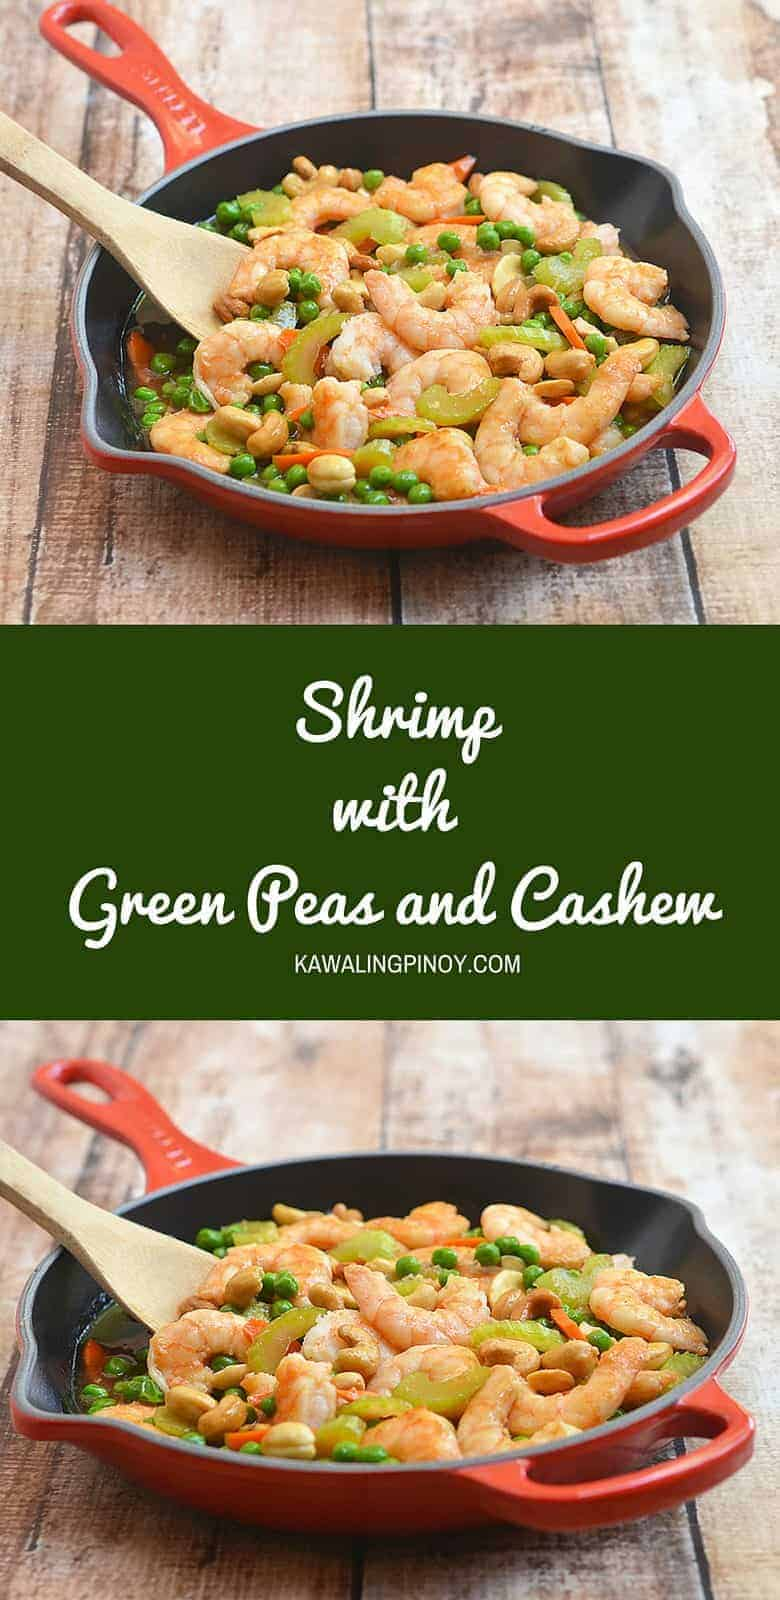 This shrimp with green peas and cashew is so easy and quick to make, it will be on your dinner table in less than 30 minutes. And it comes with the most incredible stir fry sauce that's perfect to spoon over rice or noodles.